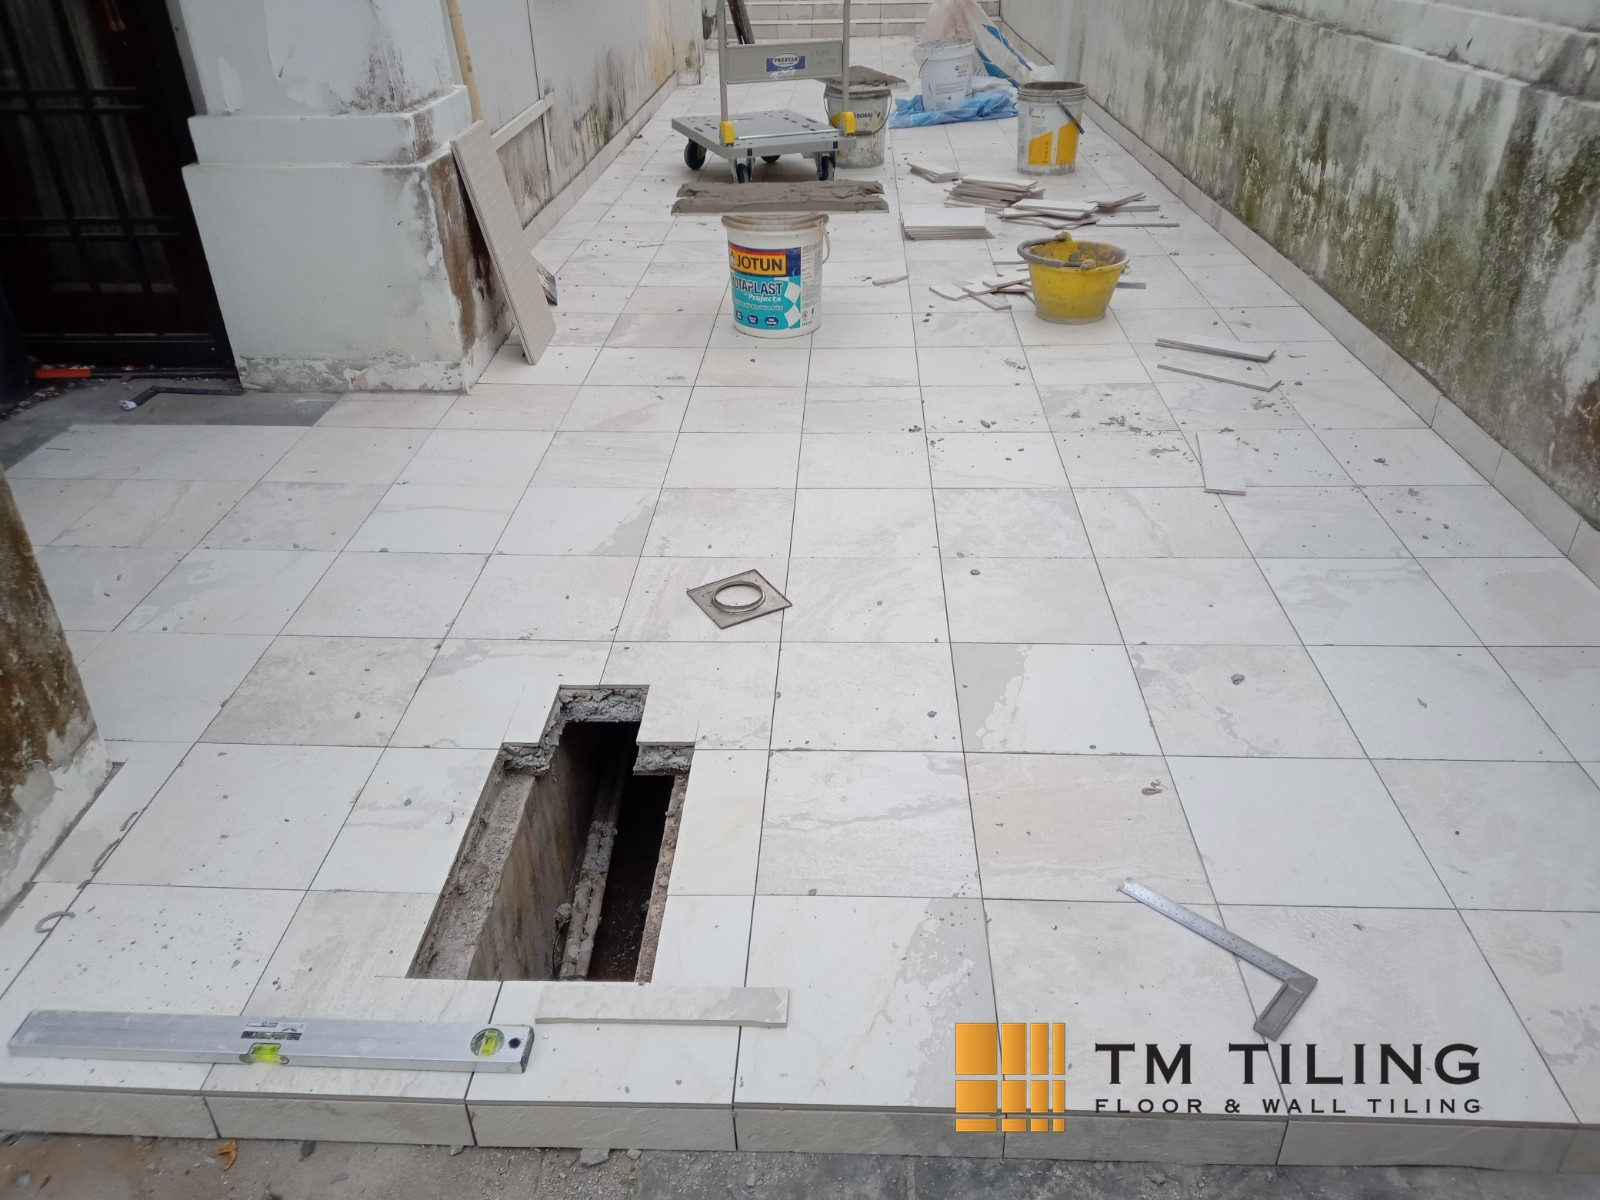 TM Tiling Contractor Singapore - #1 Direct Tiling Contractor